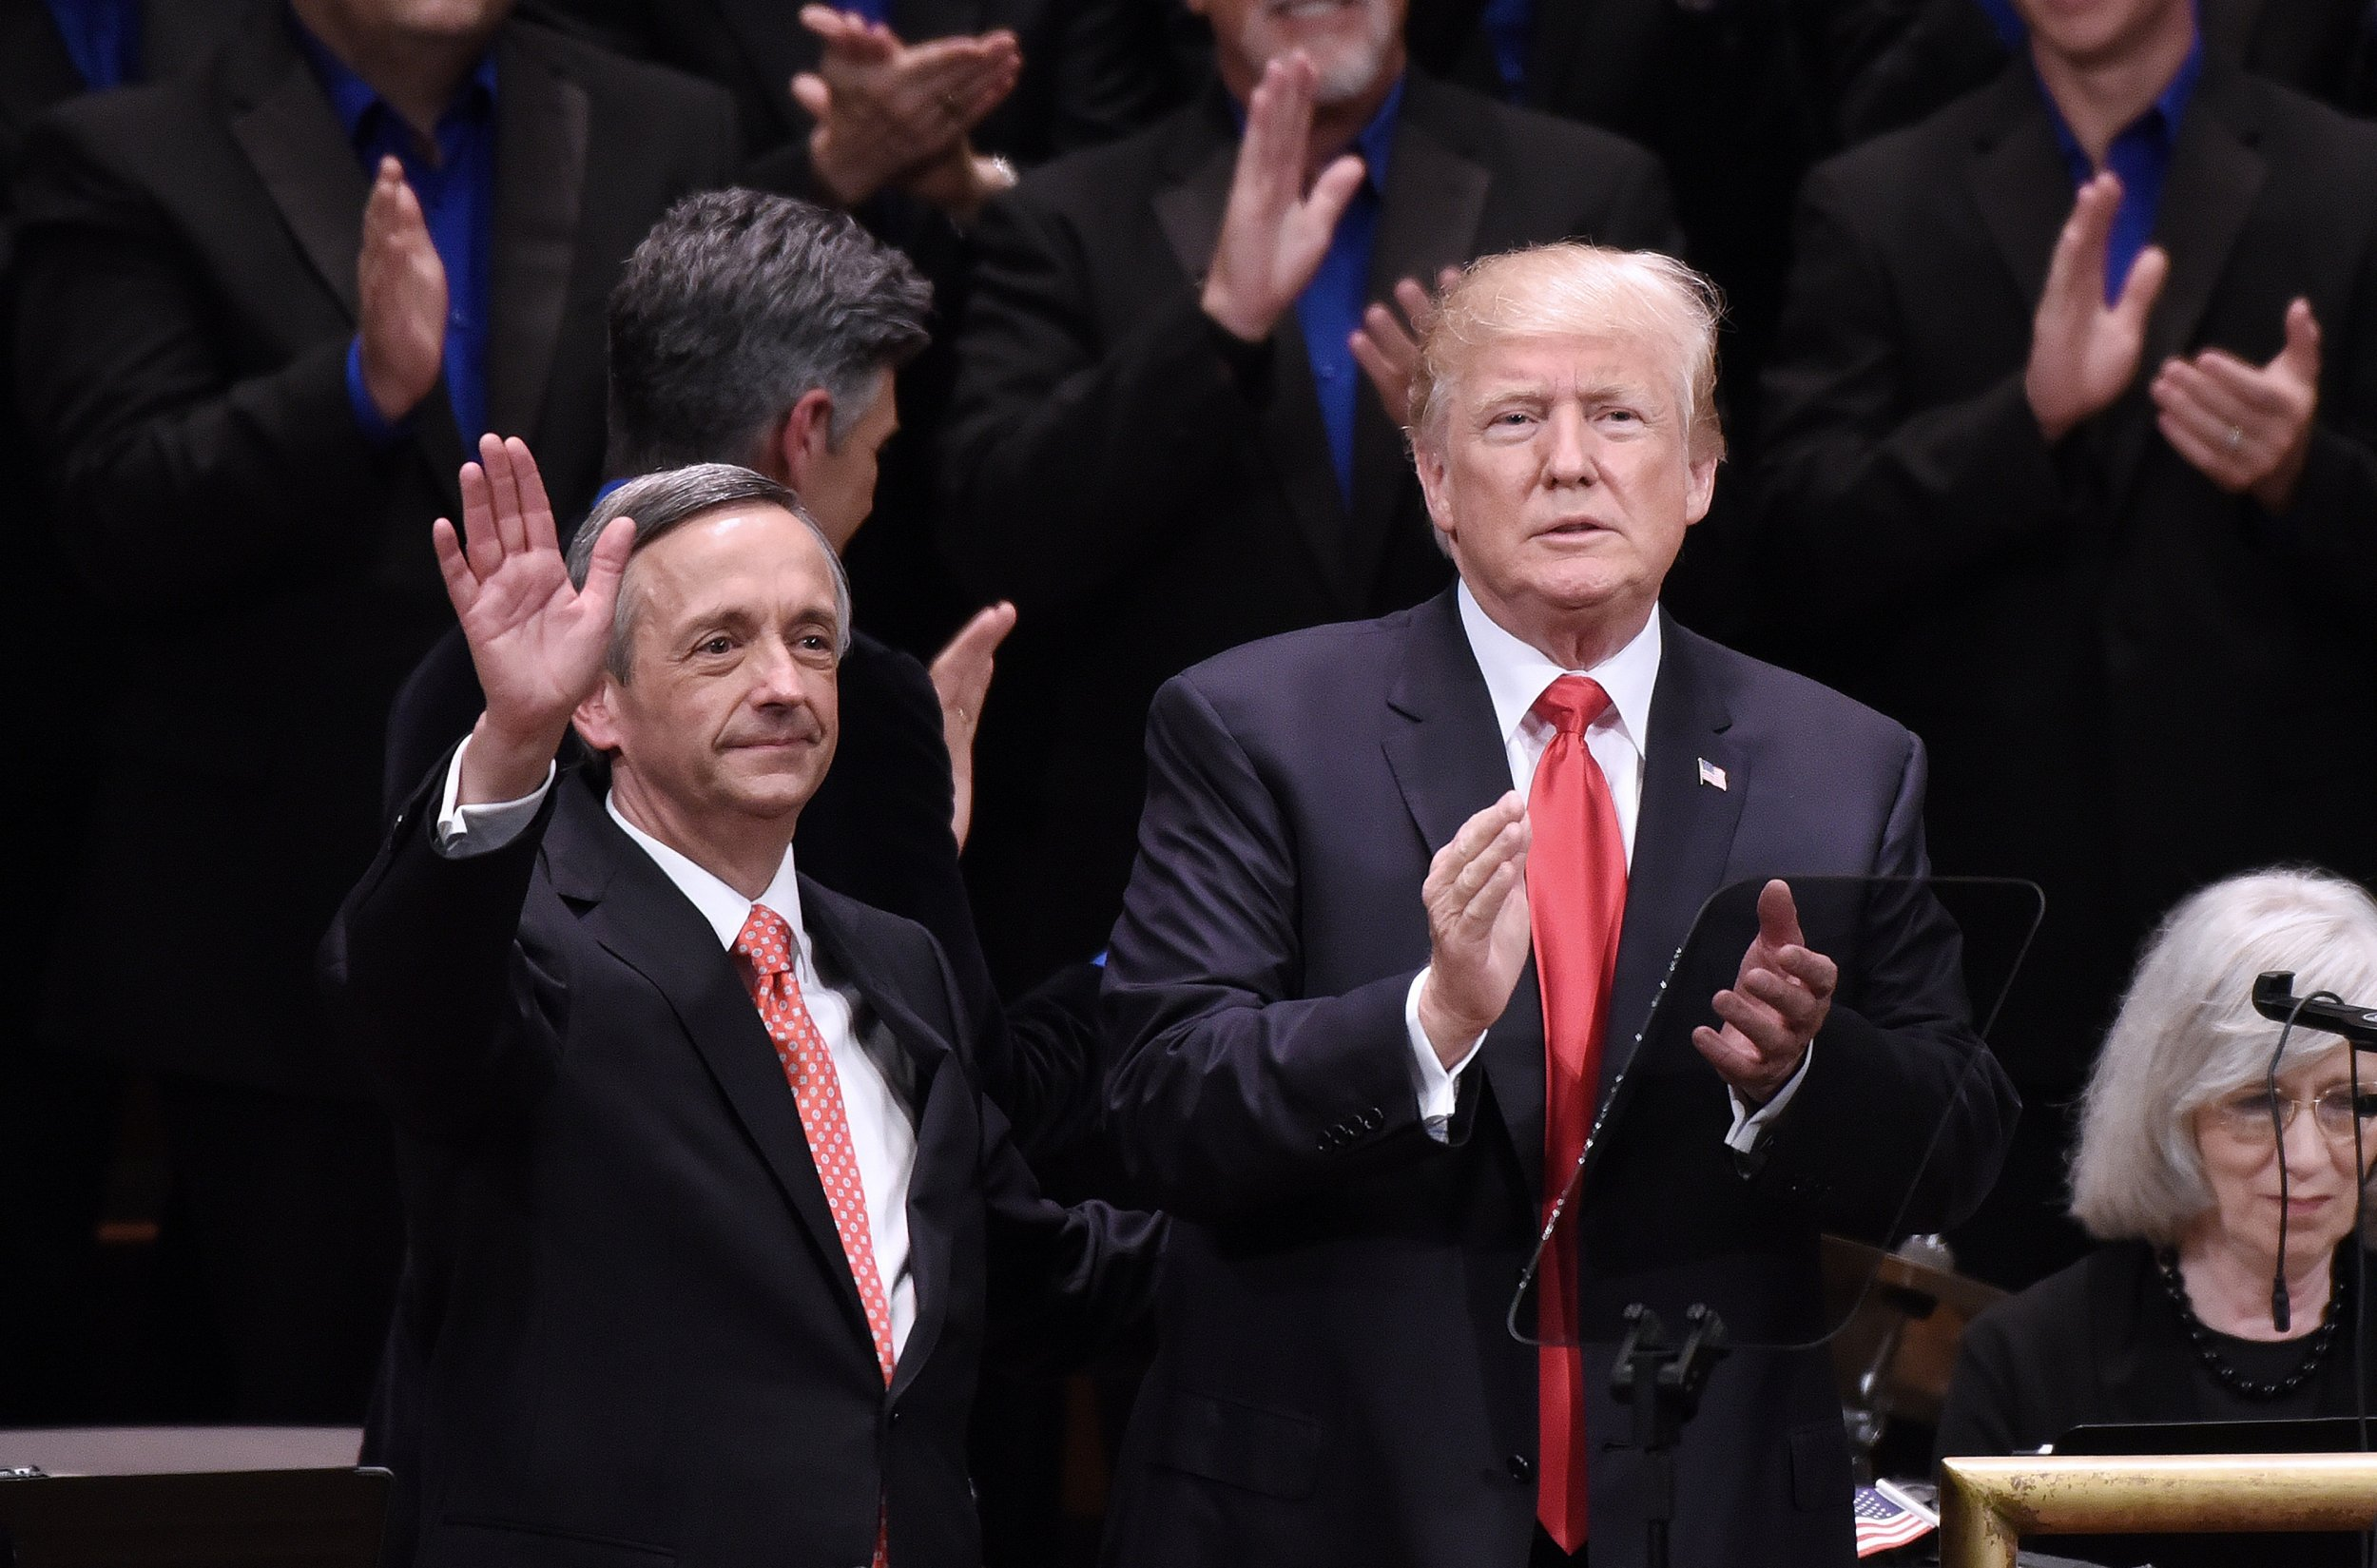 newsweek.com - Christina Zhao - Christians who support Trump are morally and spiritually superior, Pastor Robert Jeffress tells Fox News